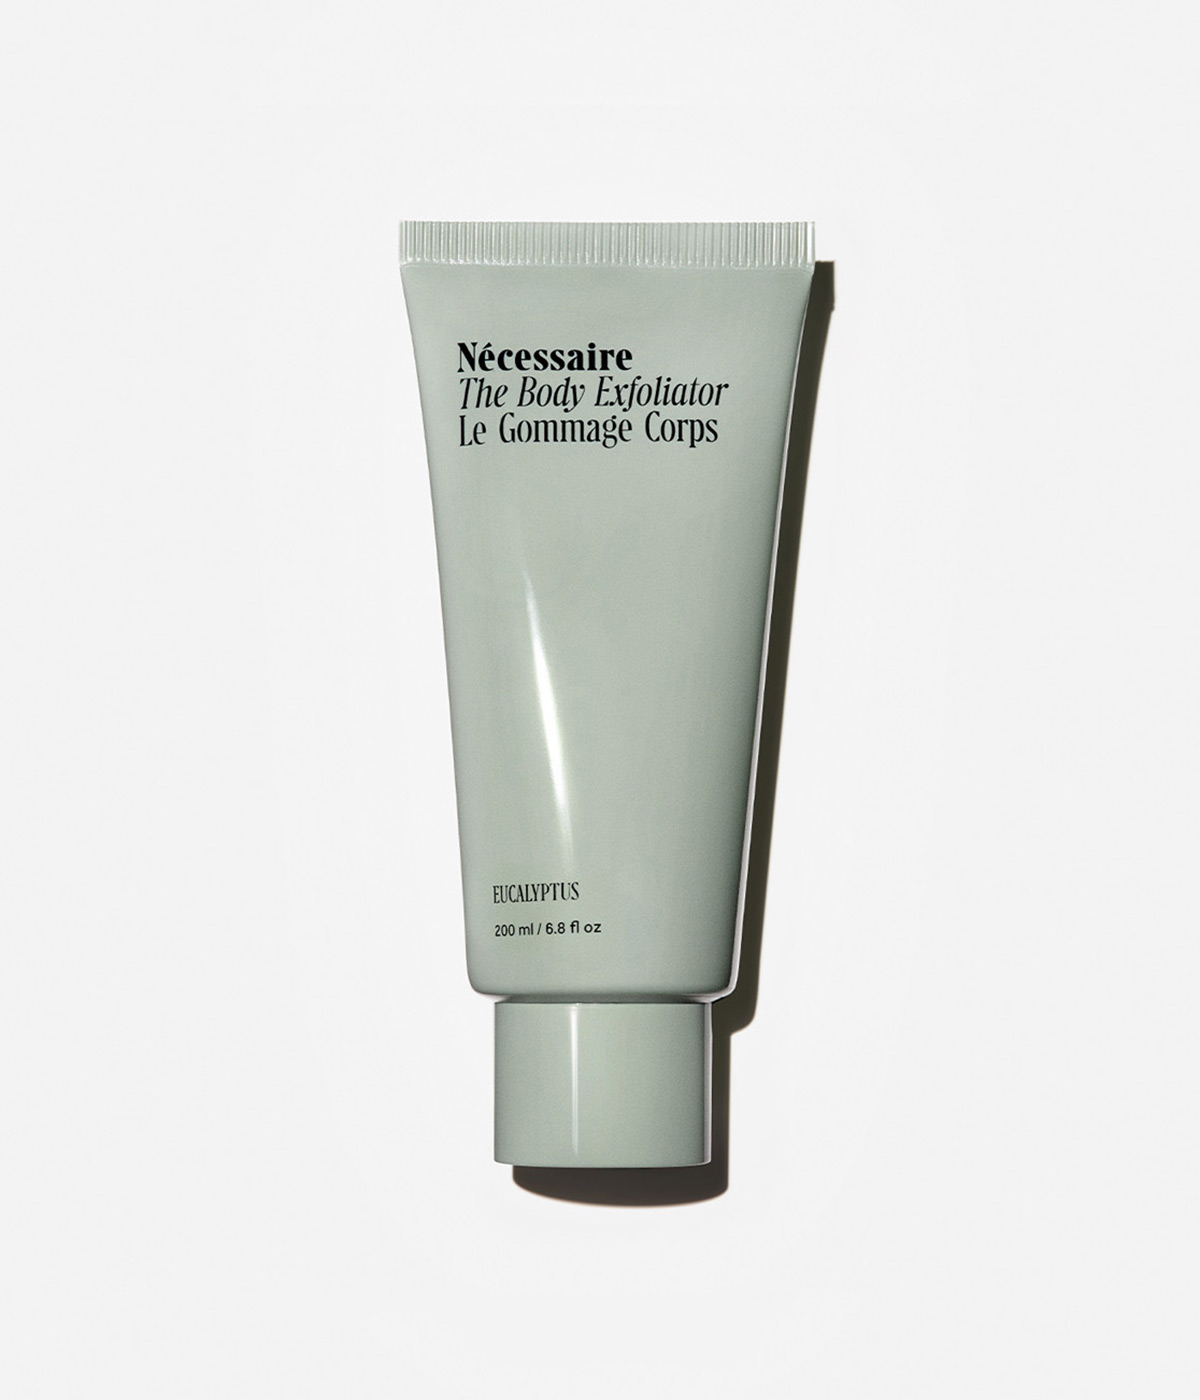 Necessaire The Body Exfoliator